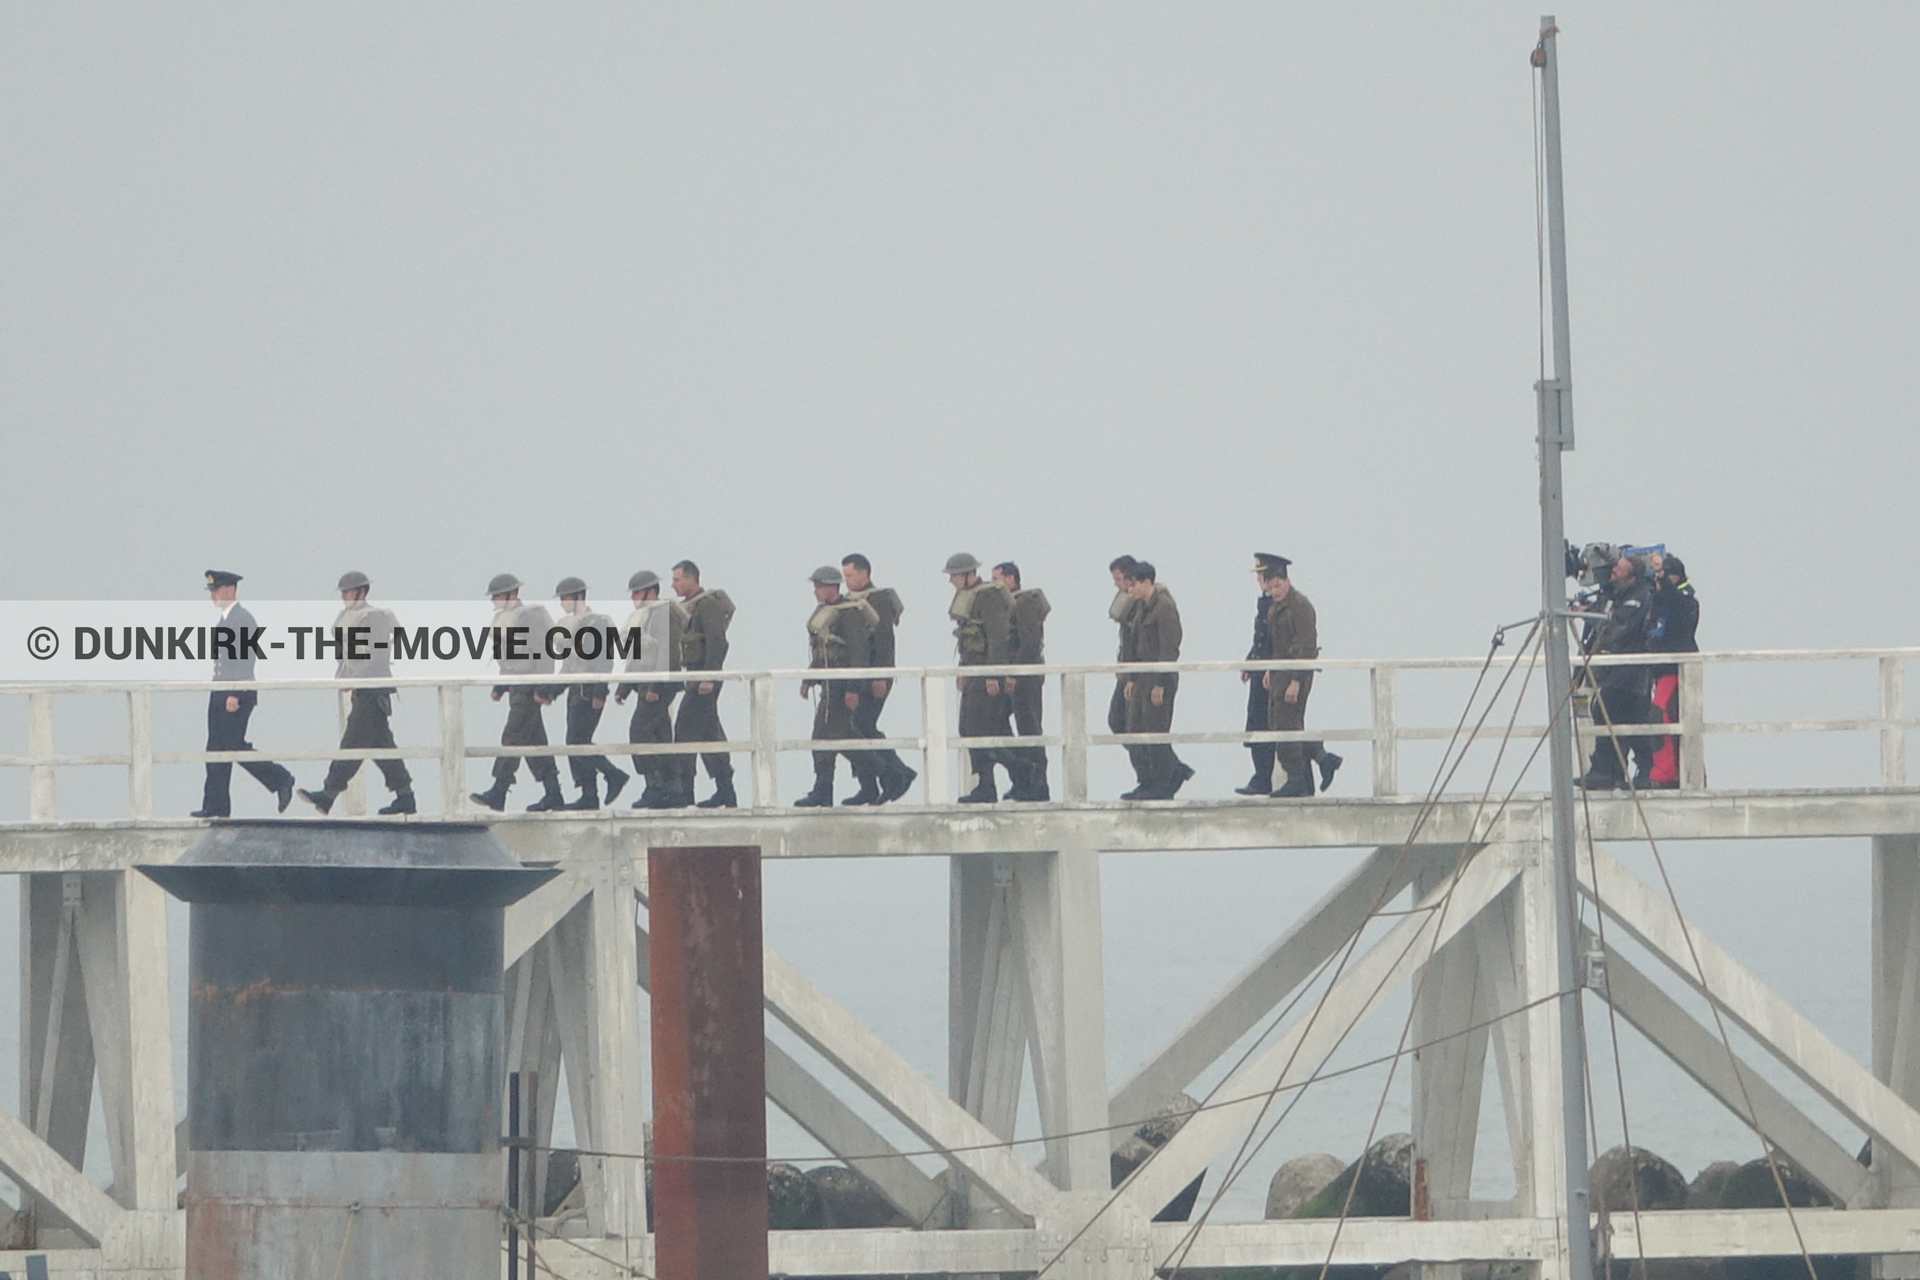 Picture with actor, IMAX camera, grey sky, decor, supernumeraries, Hoyte van Hoytema, EST pier,  from behind the scene of the Dunkirk movie by Nolan